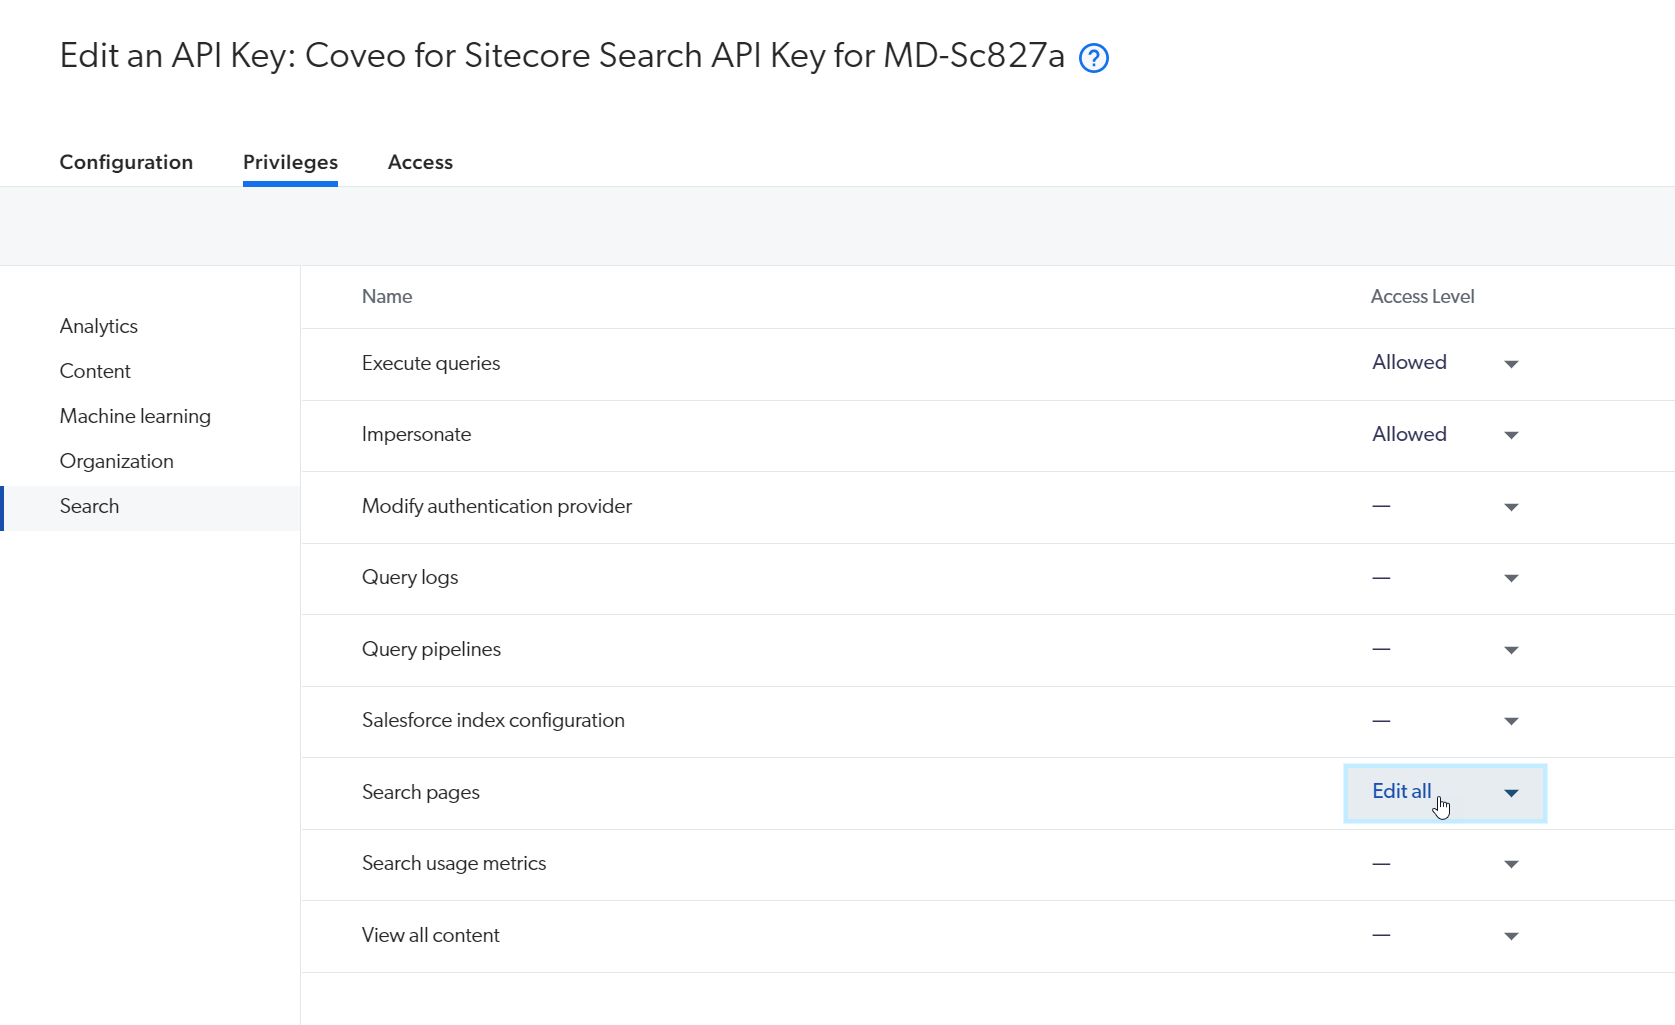 Search API key required rights